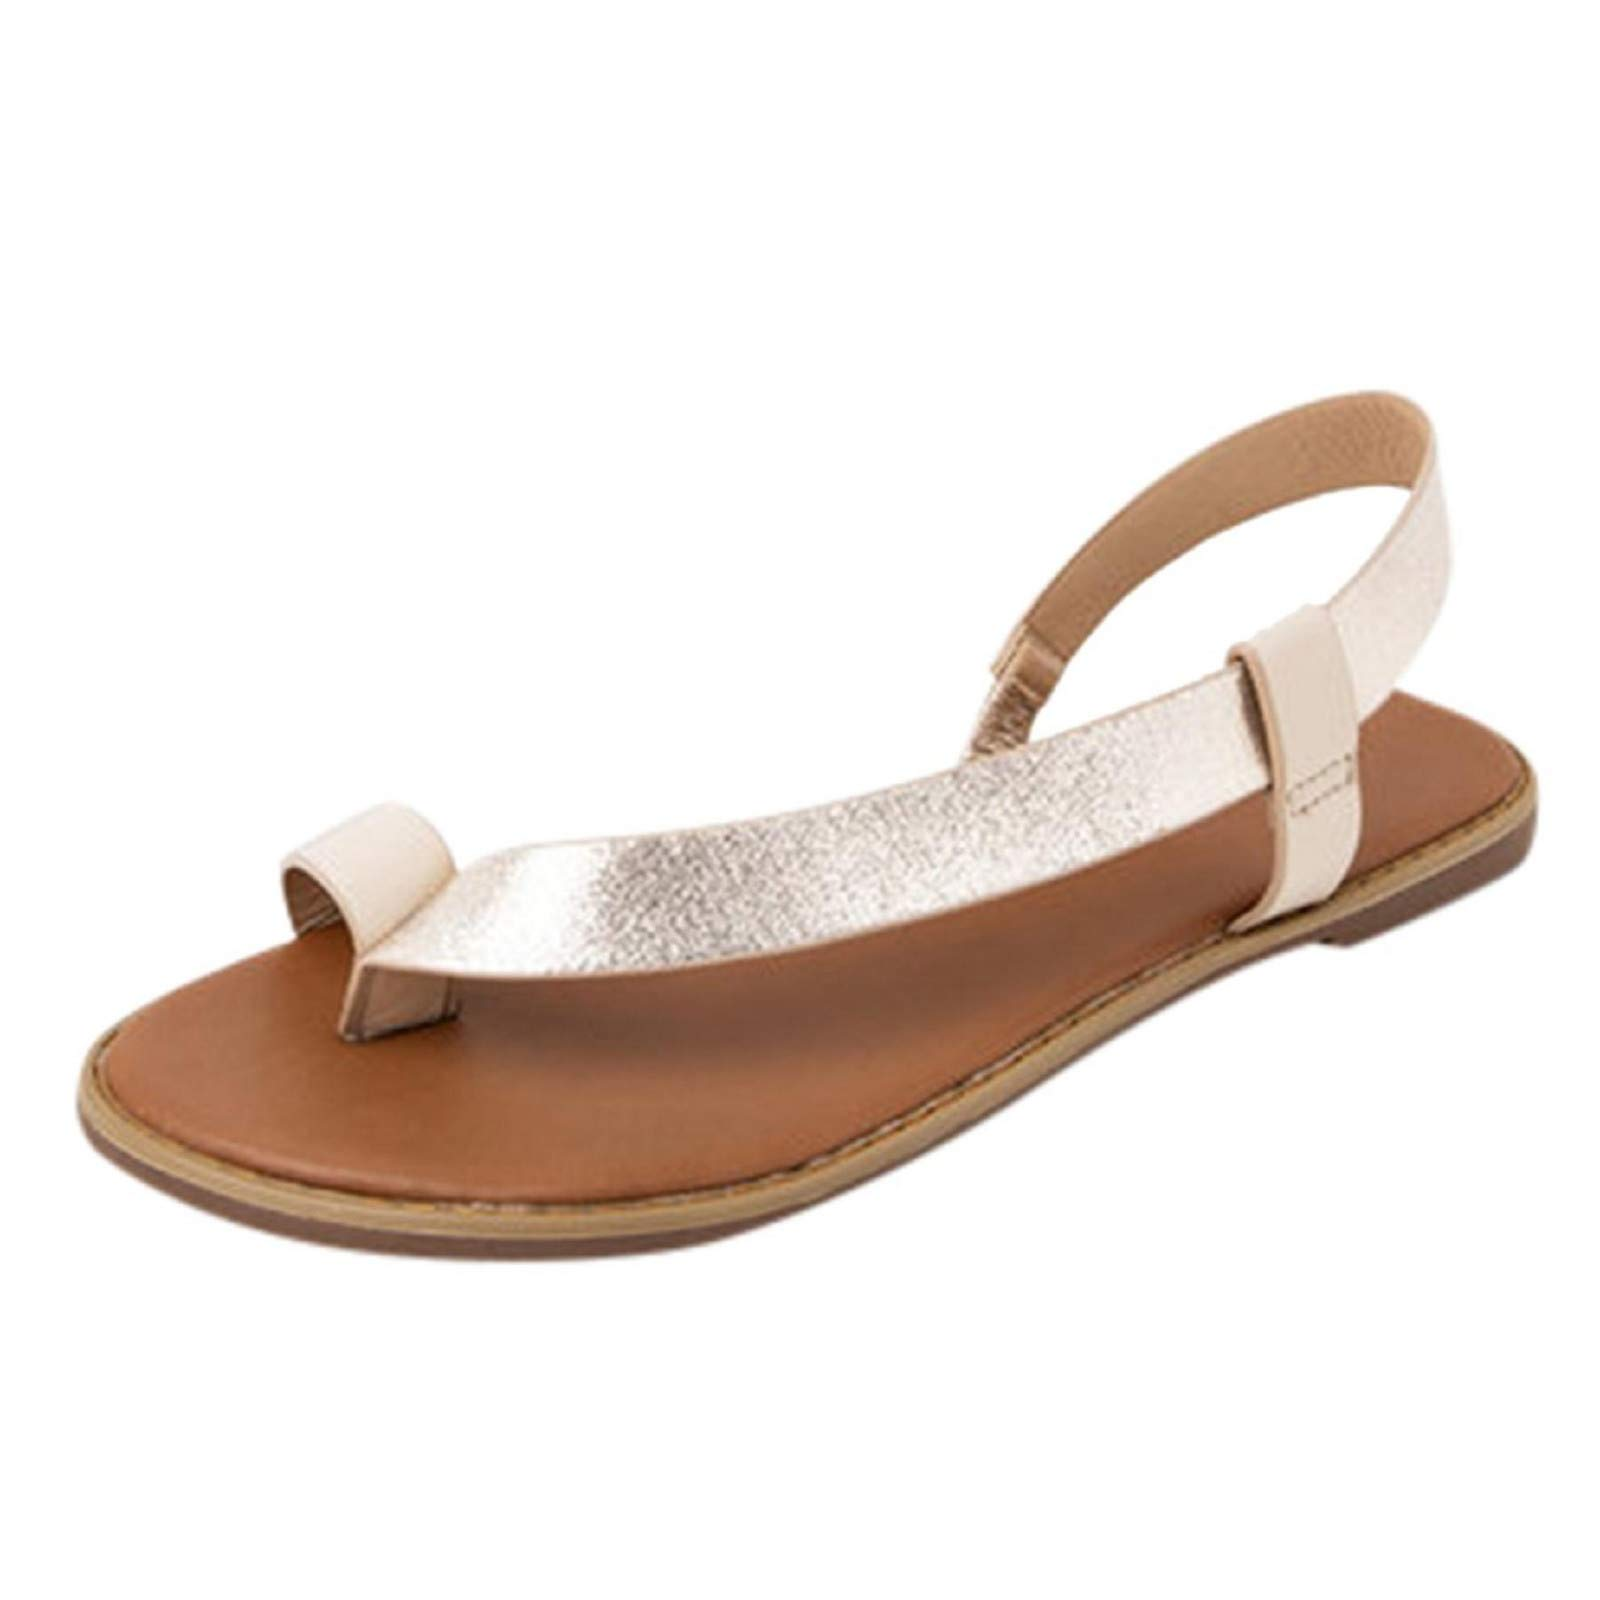 Womens Flip Flop Sandals Toe Ring Flat Sandals Thong Strappy Boho Beach Sandals Gold